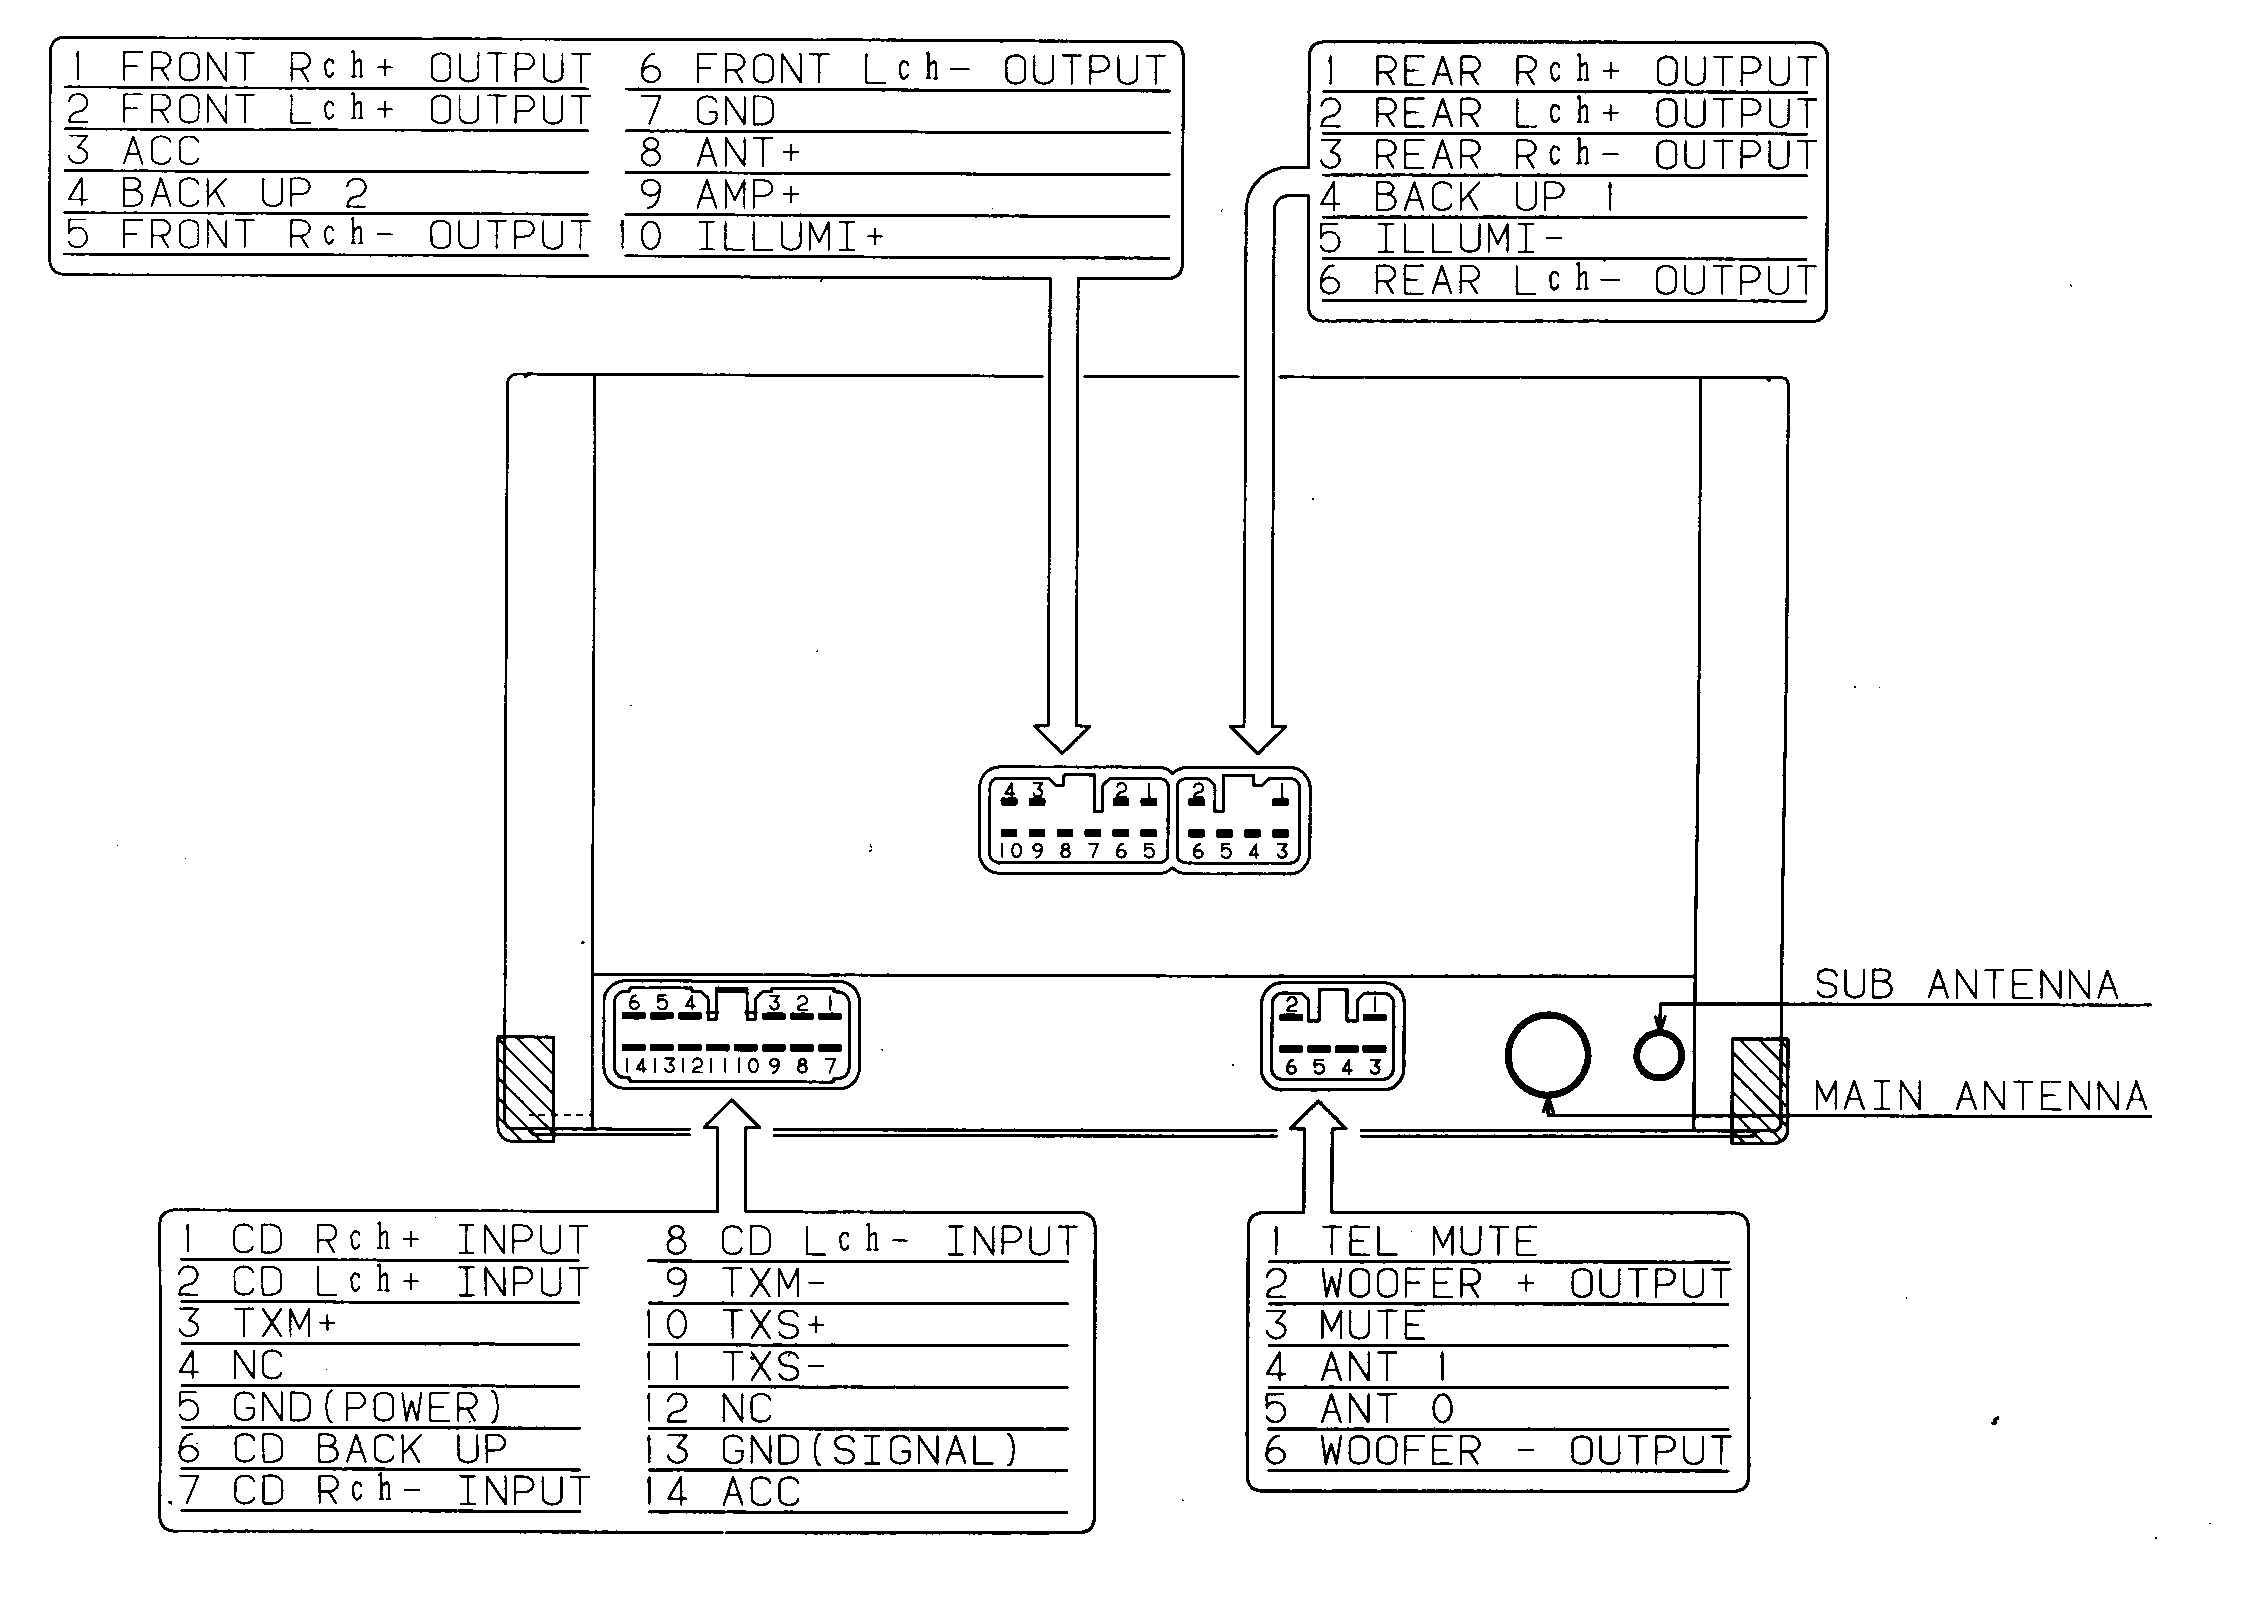 Lexus car stereo wiring diagram harness pinout connector wire lexus es300 radio wiring diagram 2002 lexus es300 radio wiring  at love-stories.co